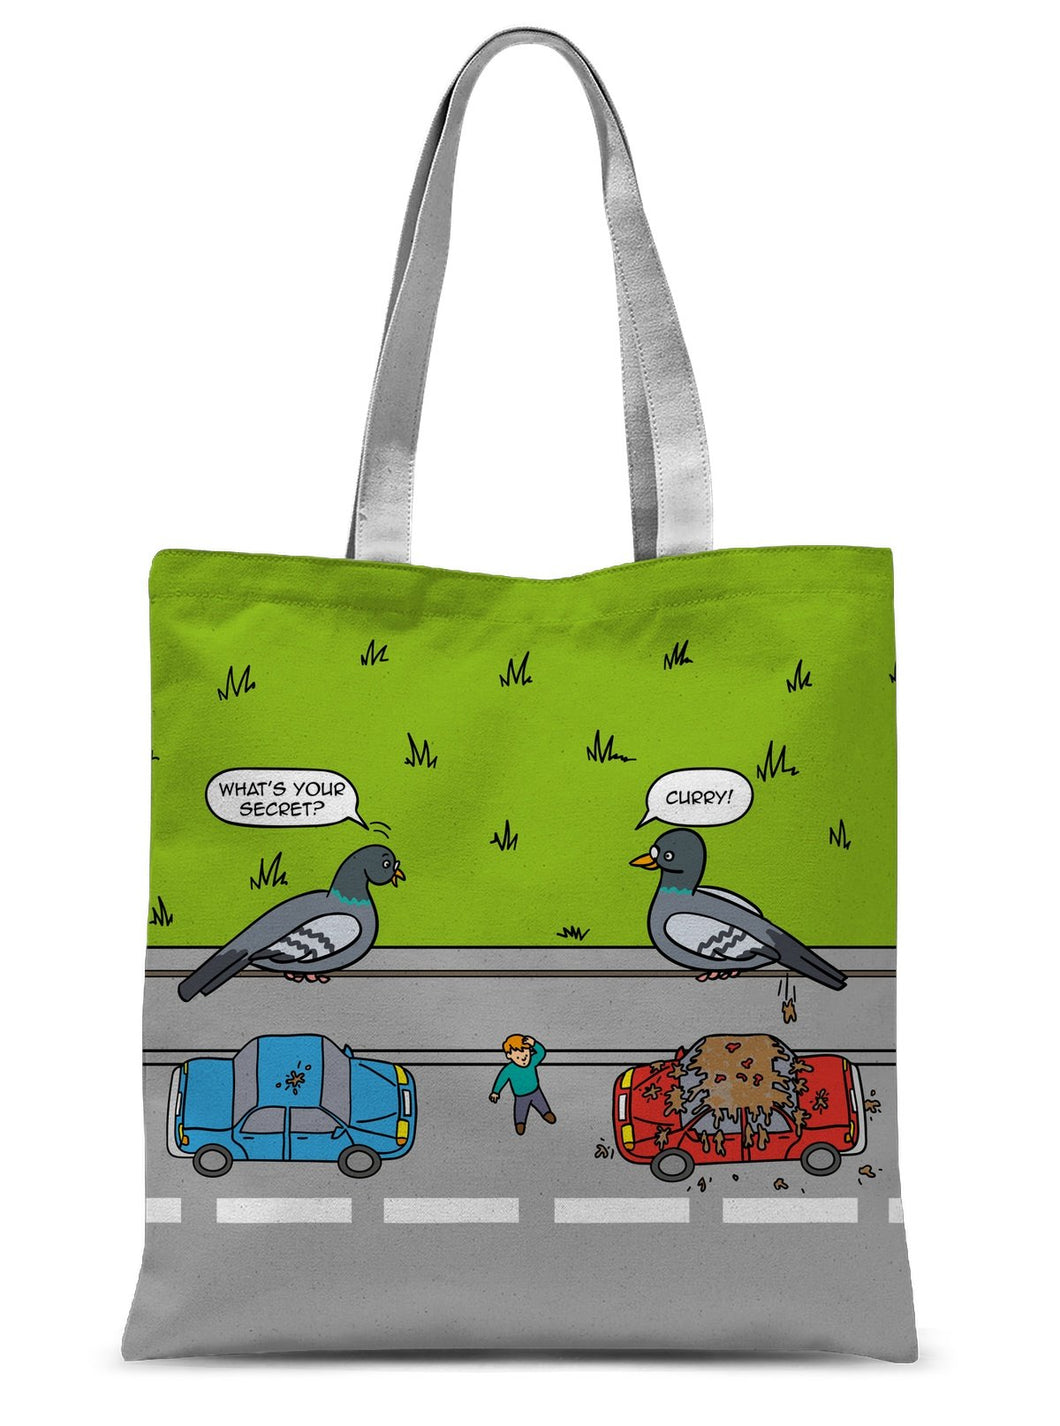 Flipping The Bird - revised Sublimation Tote Bag 15